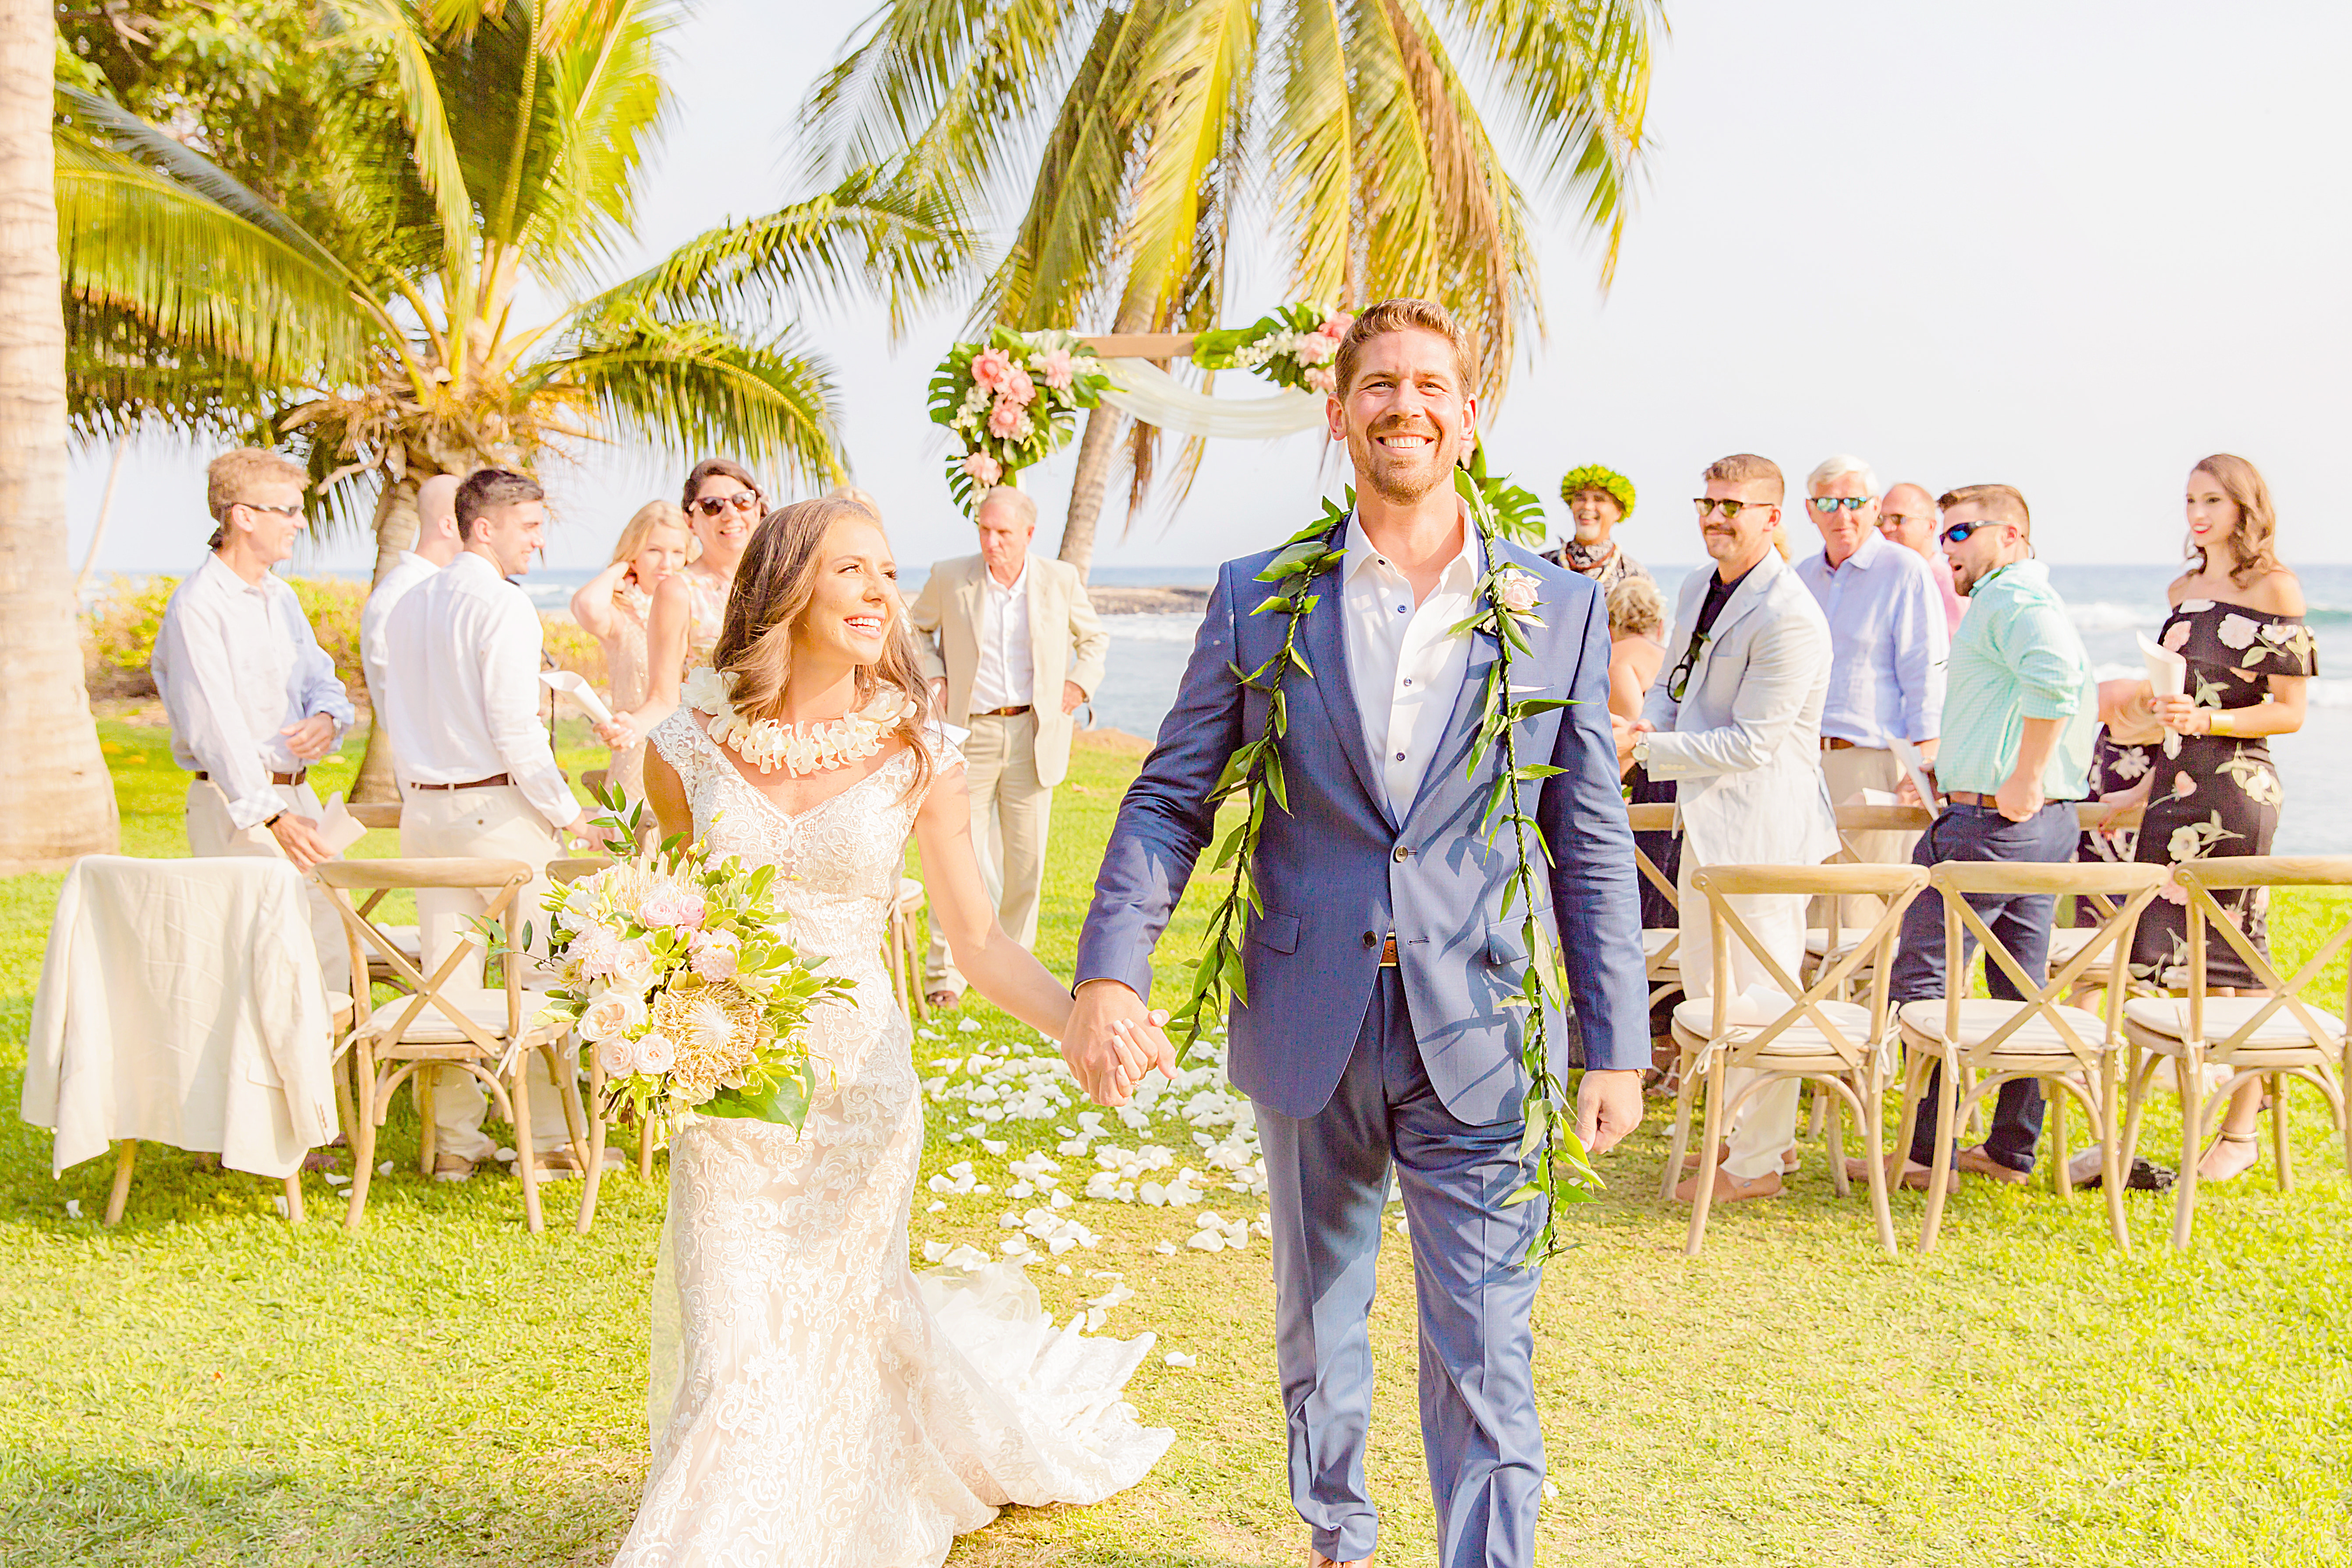 Maui Wedding Ceremony | Destination Wedding in Maui | Maui Wedding Planner | Maui's Angels blog